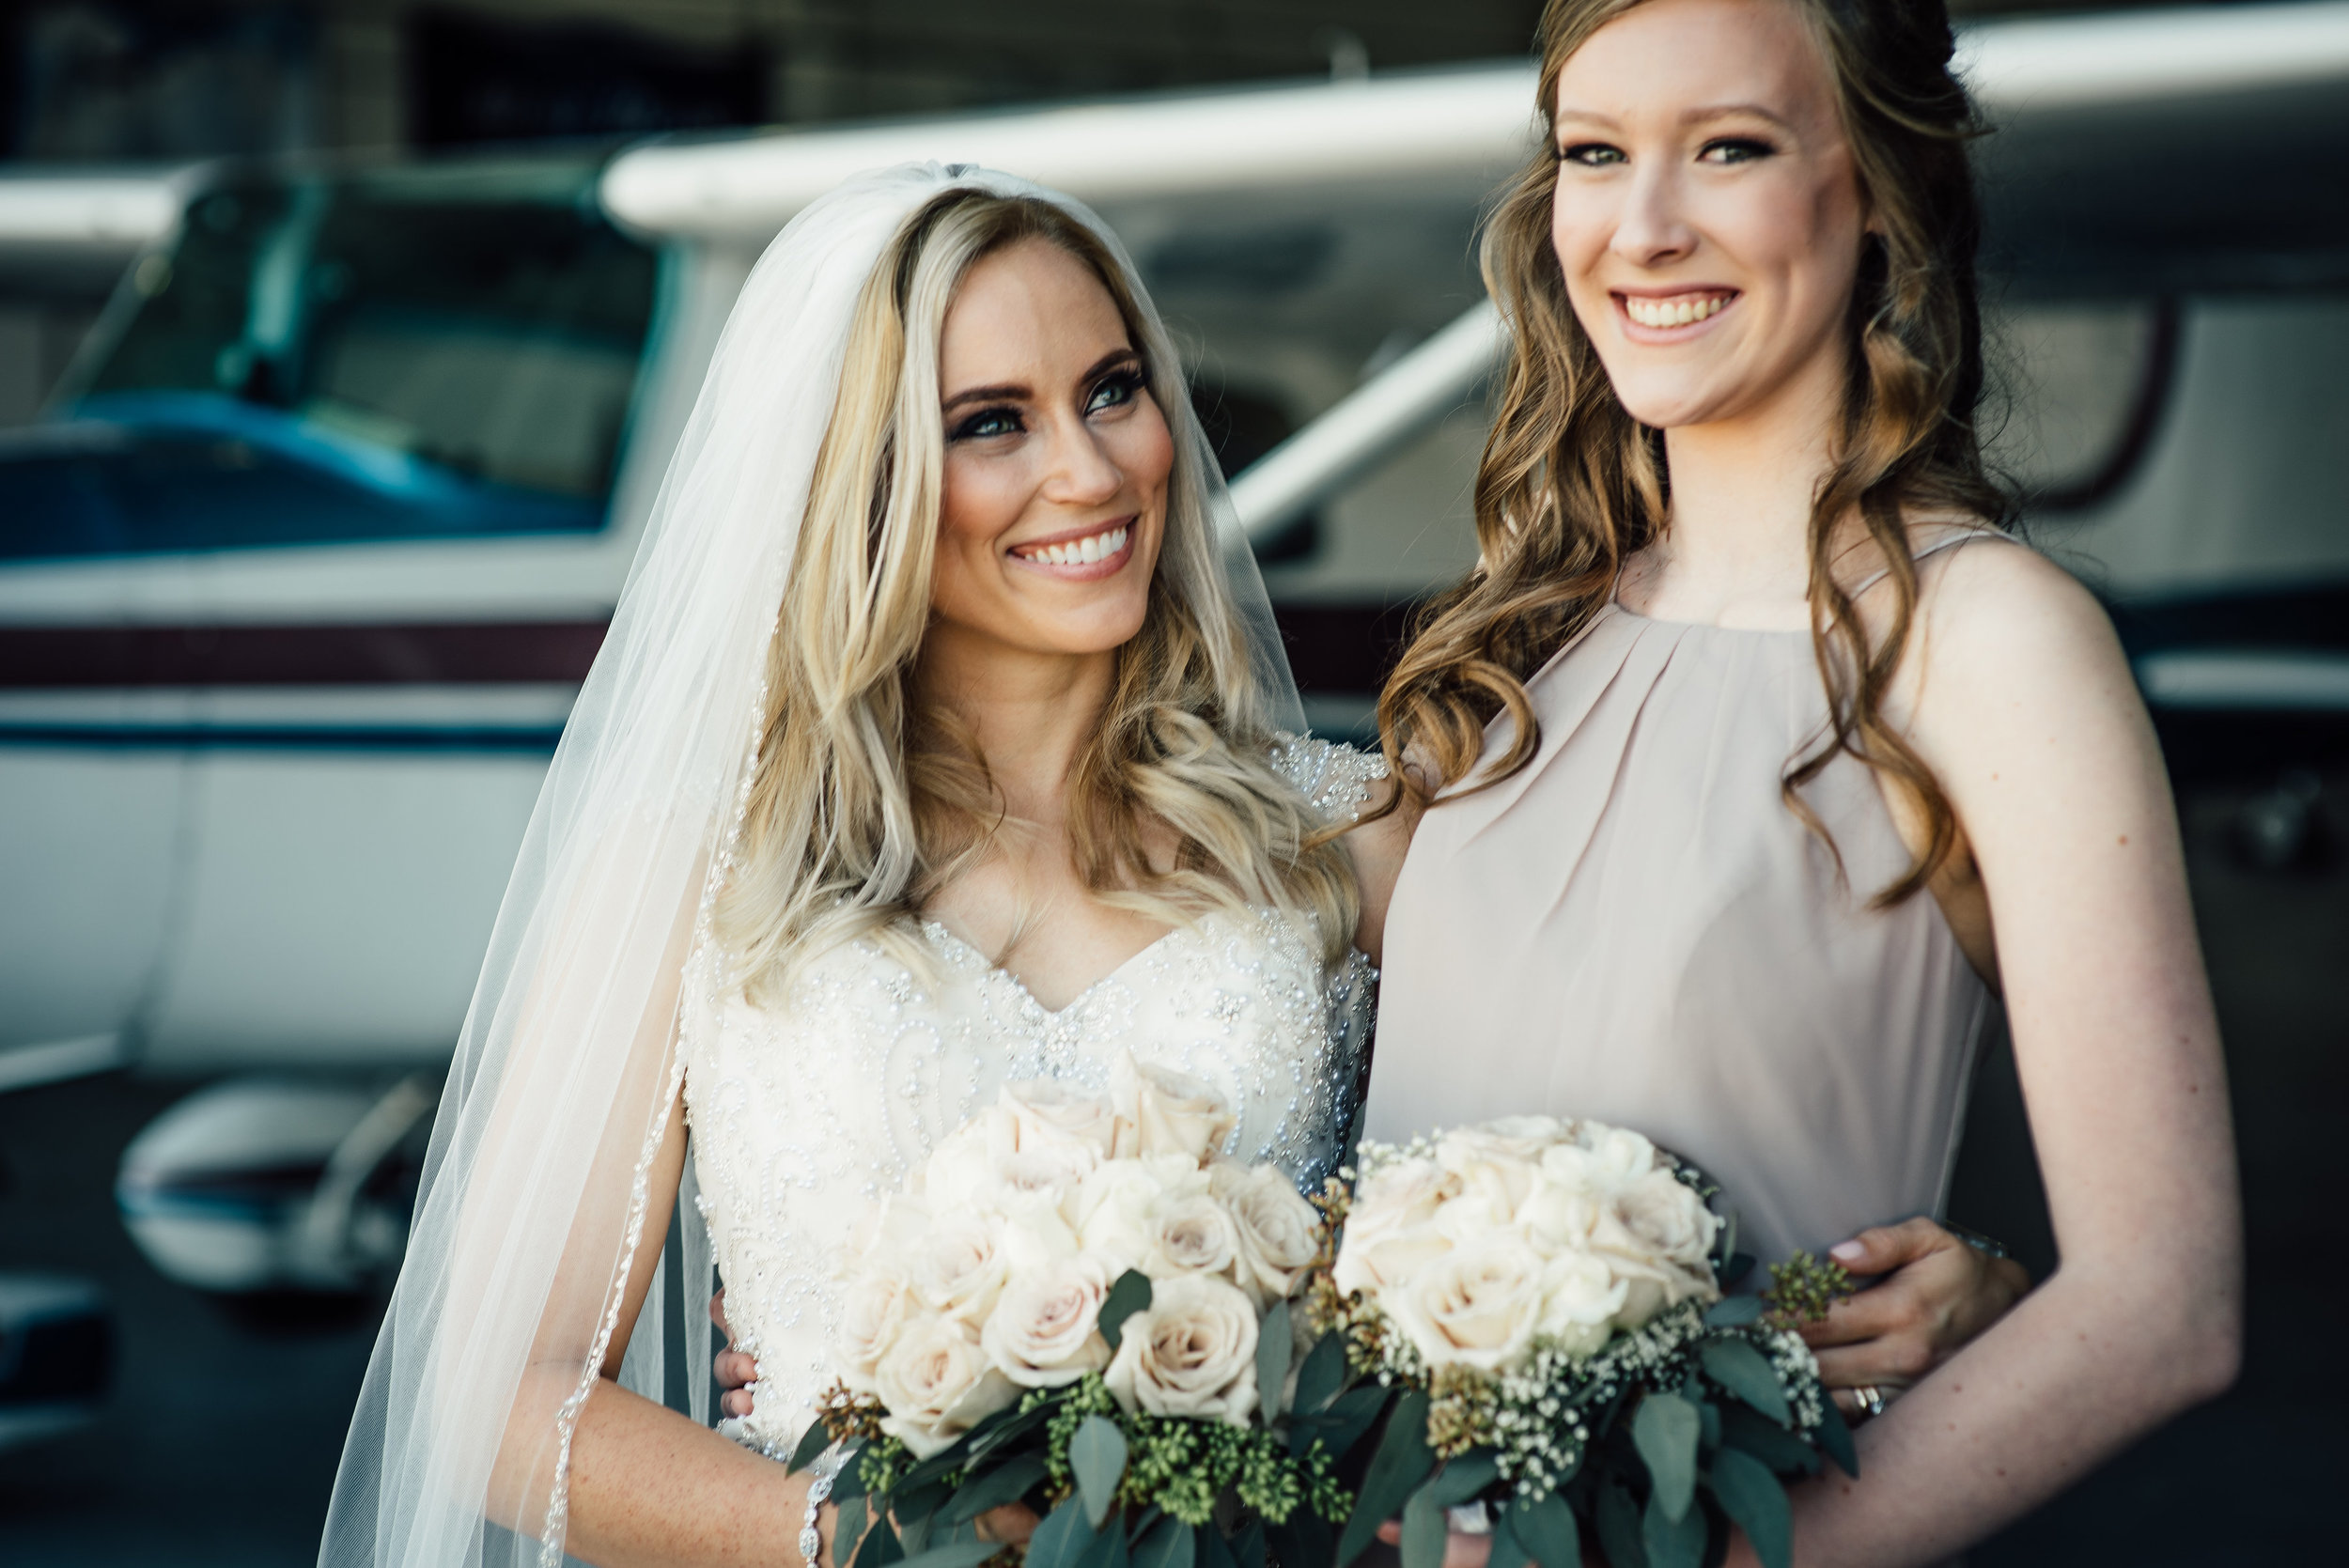 WB - Bride & Bridesmaid3.jpg